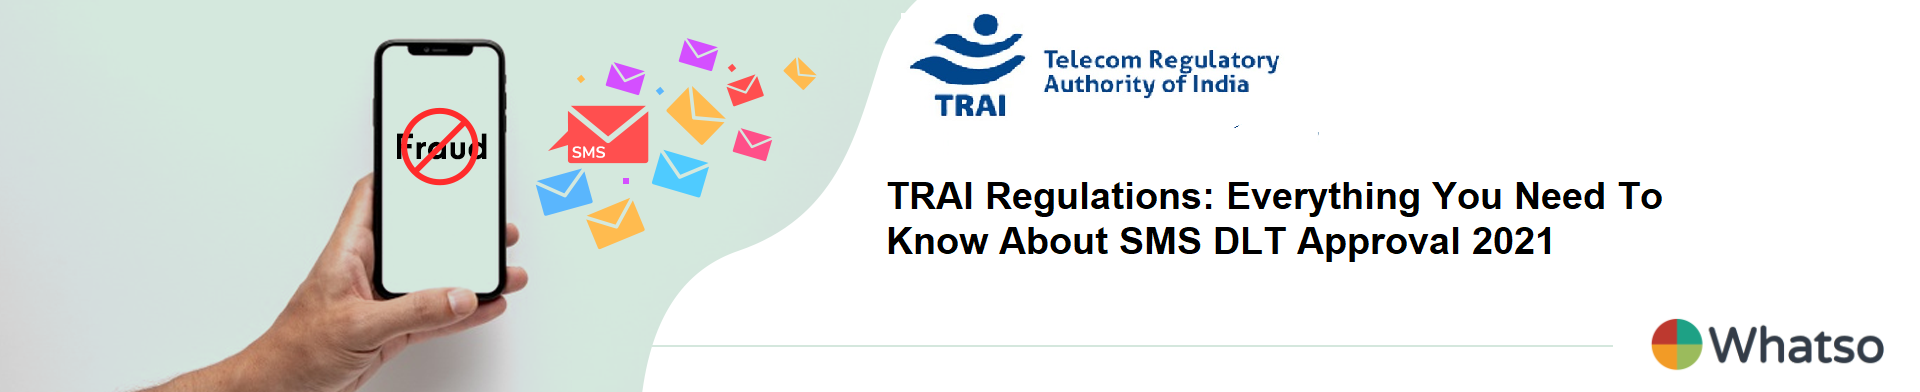 TRAI Regulations About SMS DLT Approval